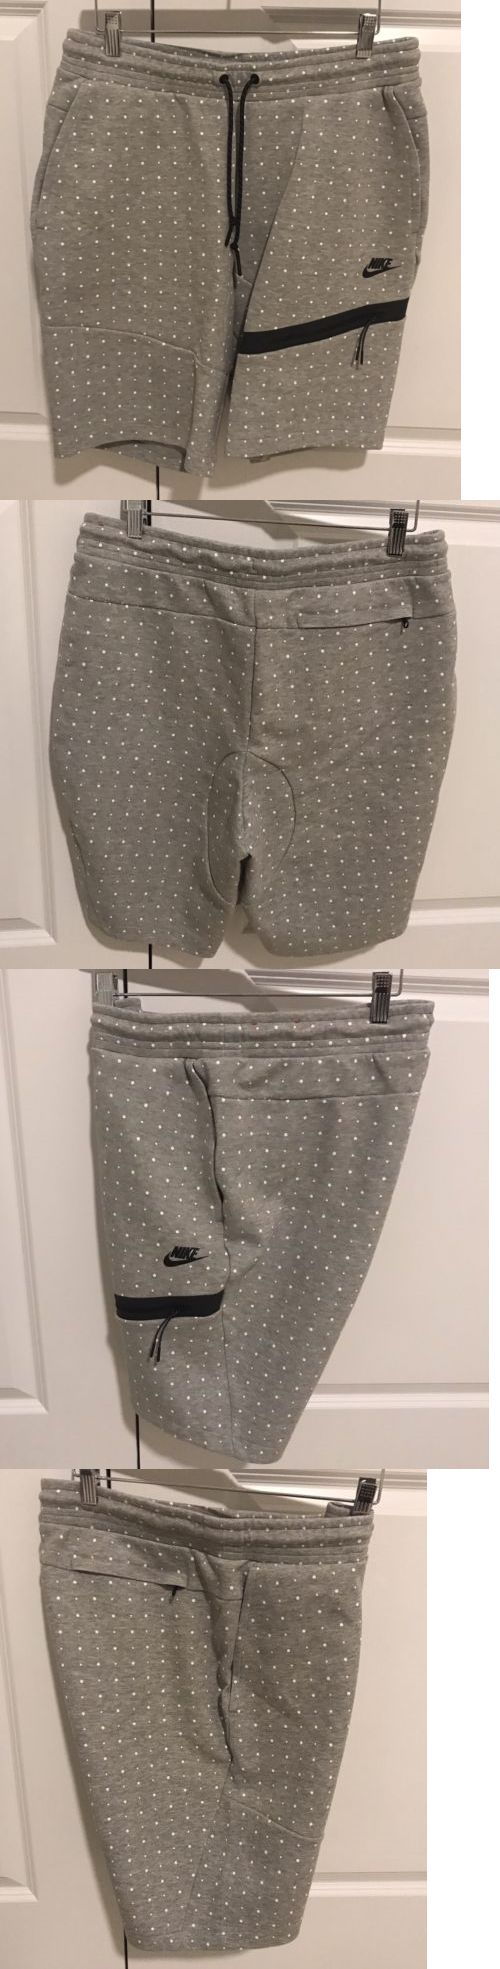 Athletic Apparel 137084: Nike Tech Fleece Polka Dot Shorts Black White Men S Size Large -> BUY IT NOW ONLY: $59 on eBay!